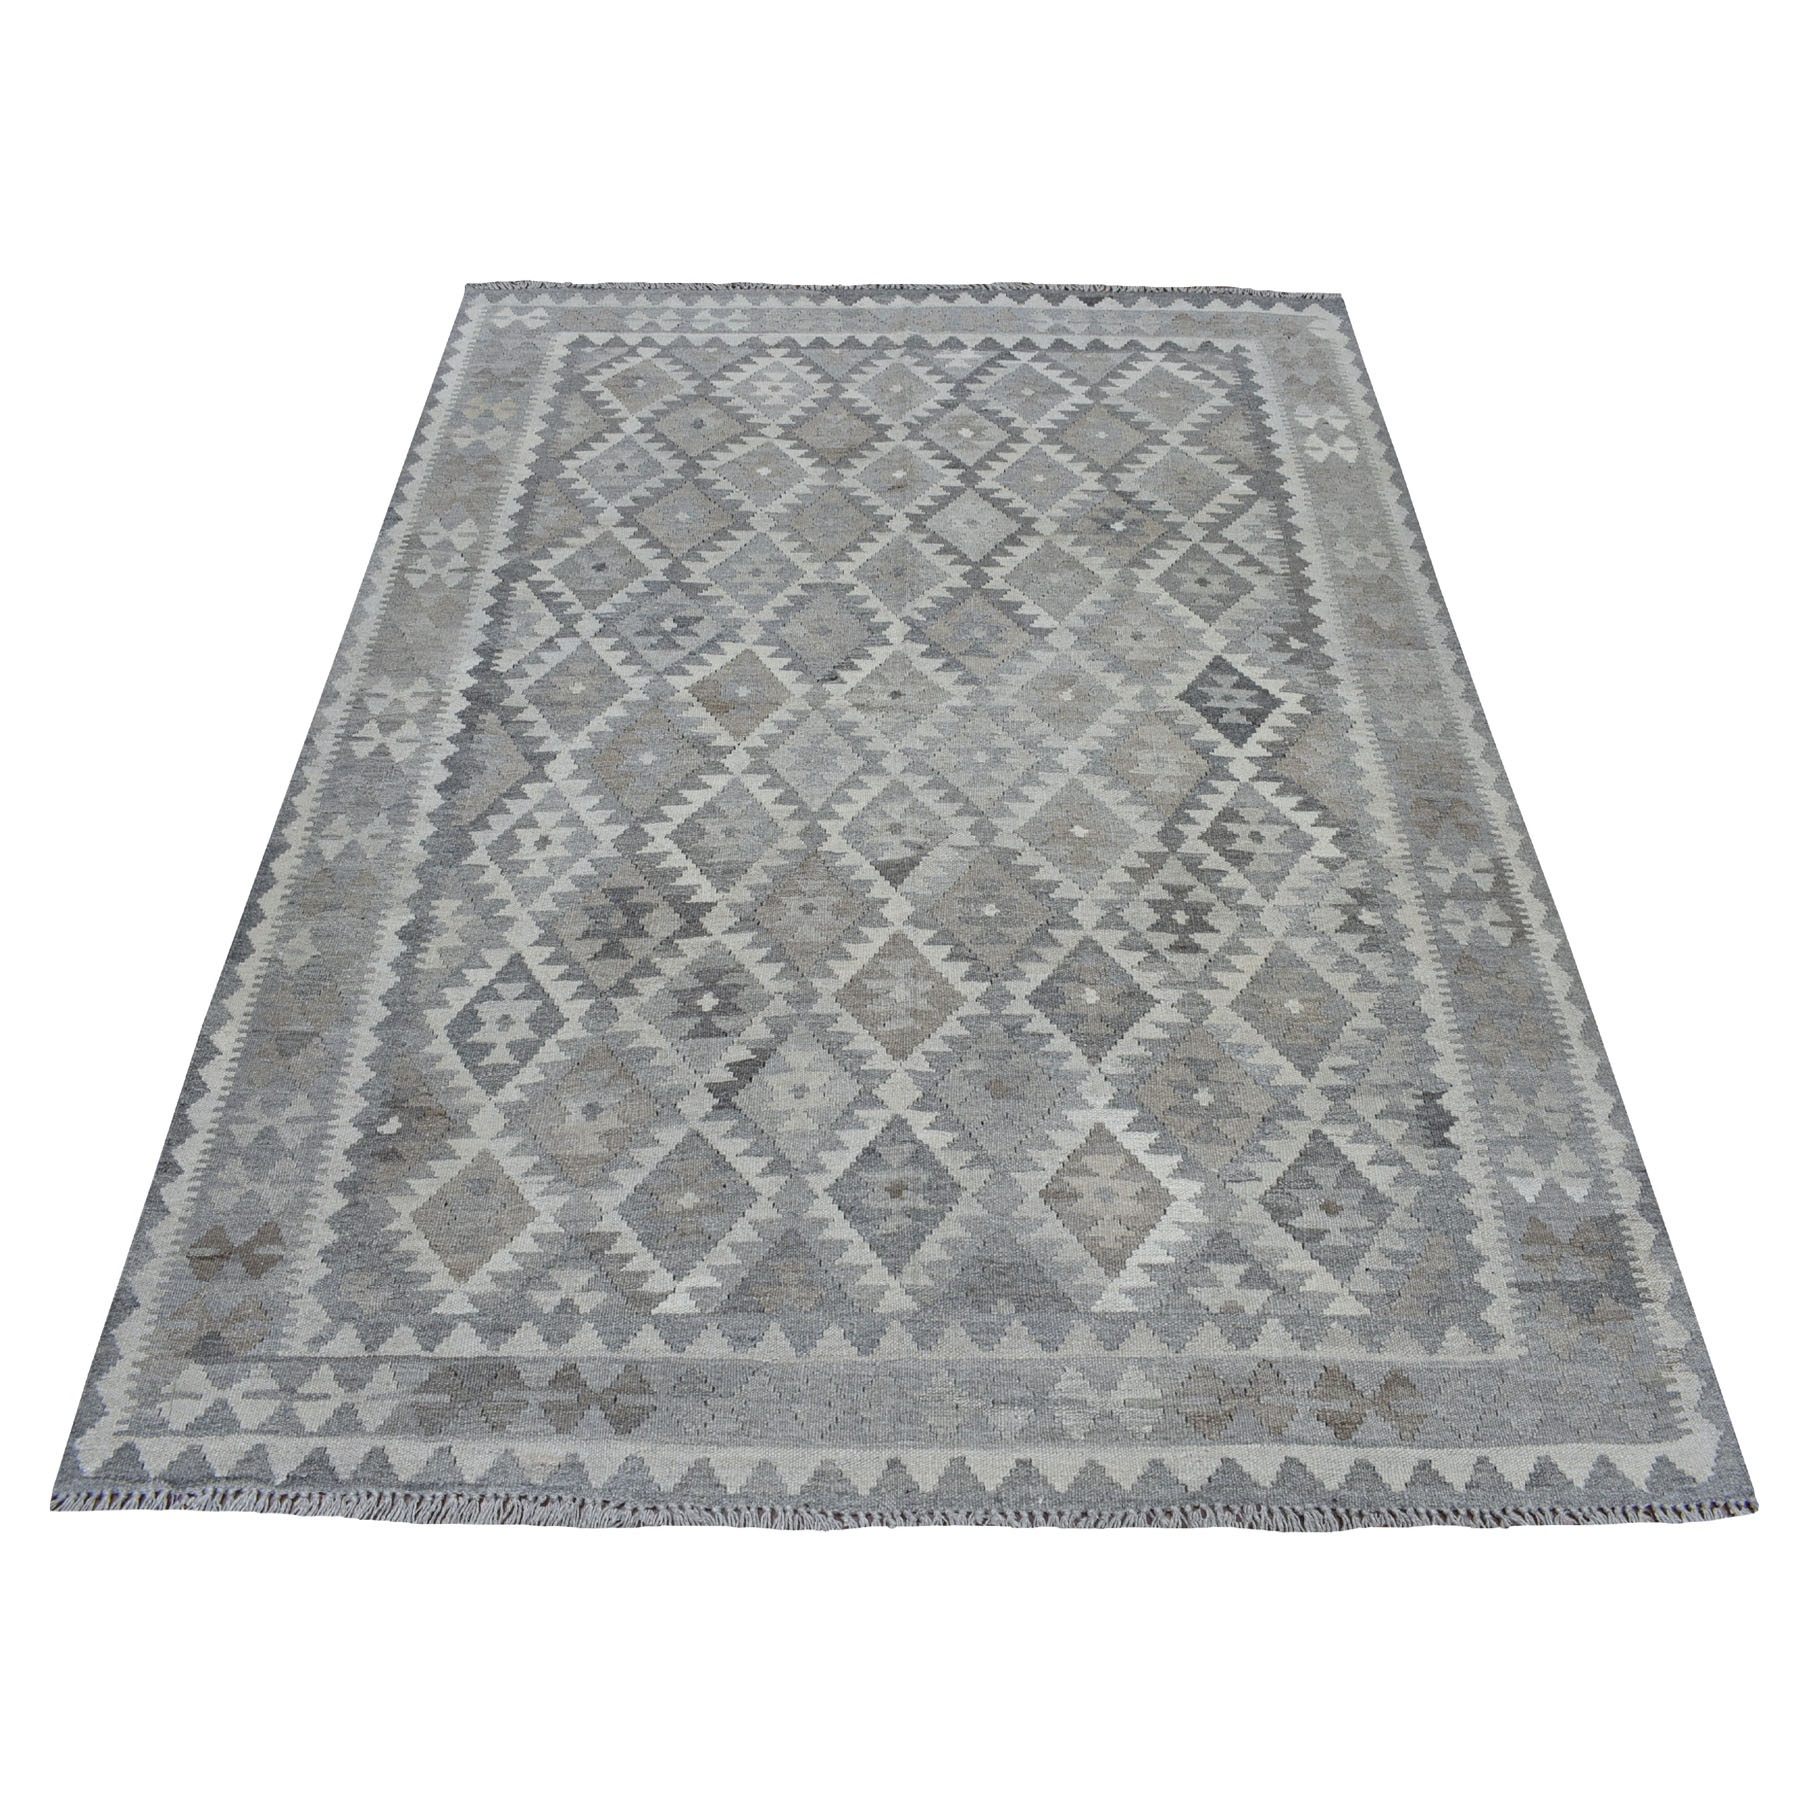 """5'X6'6"""" Undyed Natural Wool Afghan Kilim Reversible Hand Woven Oriental Rug moaec0a8"""